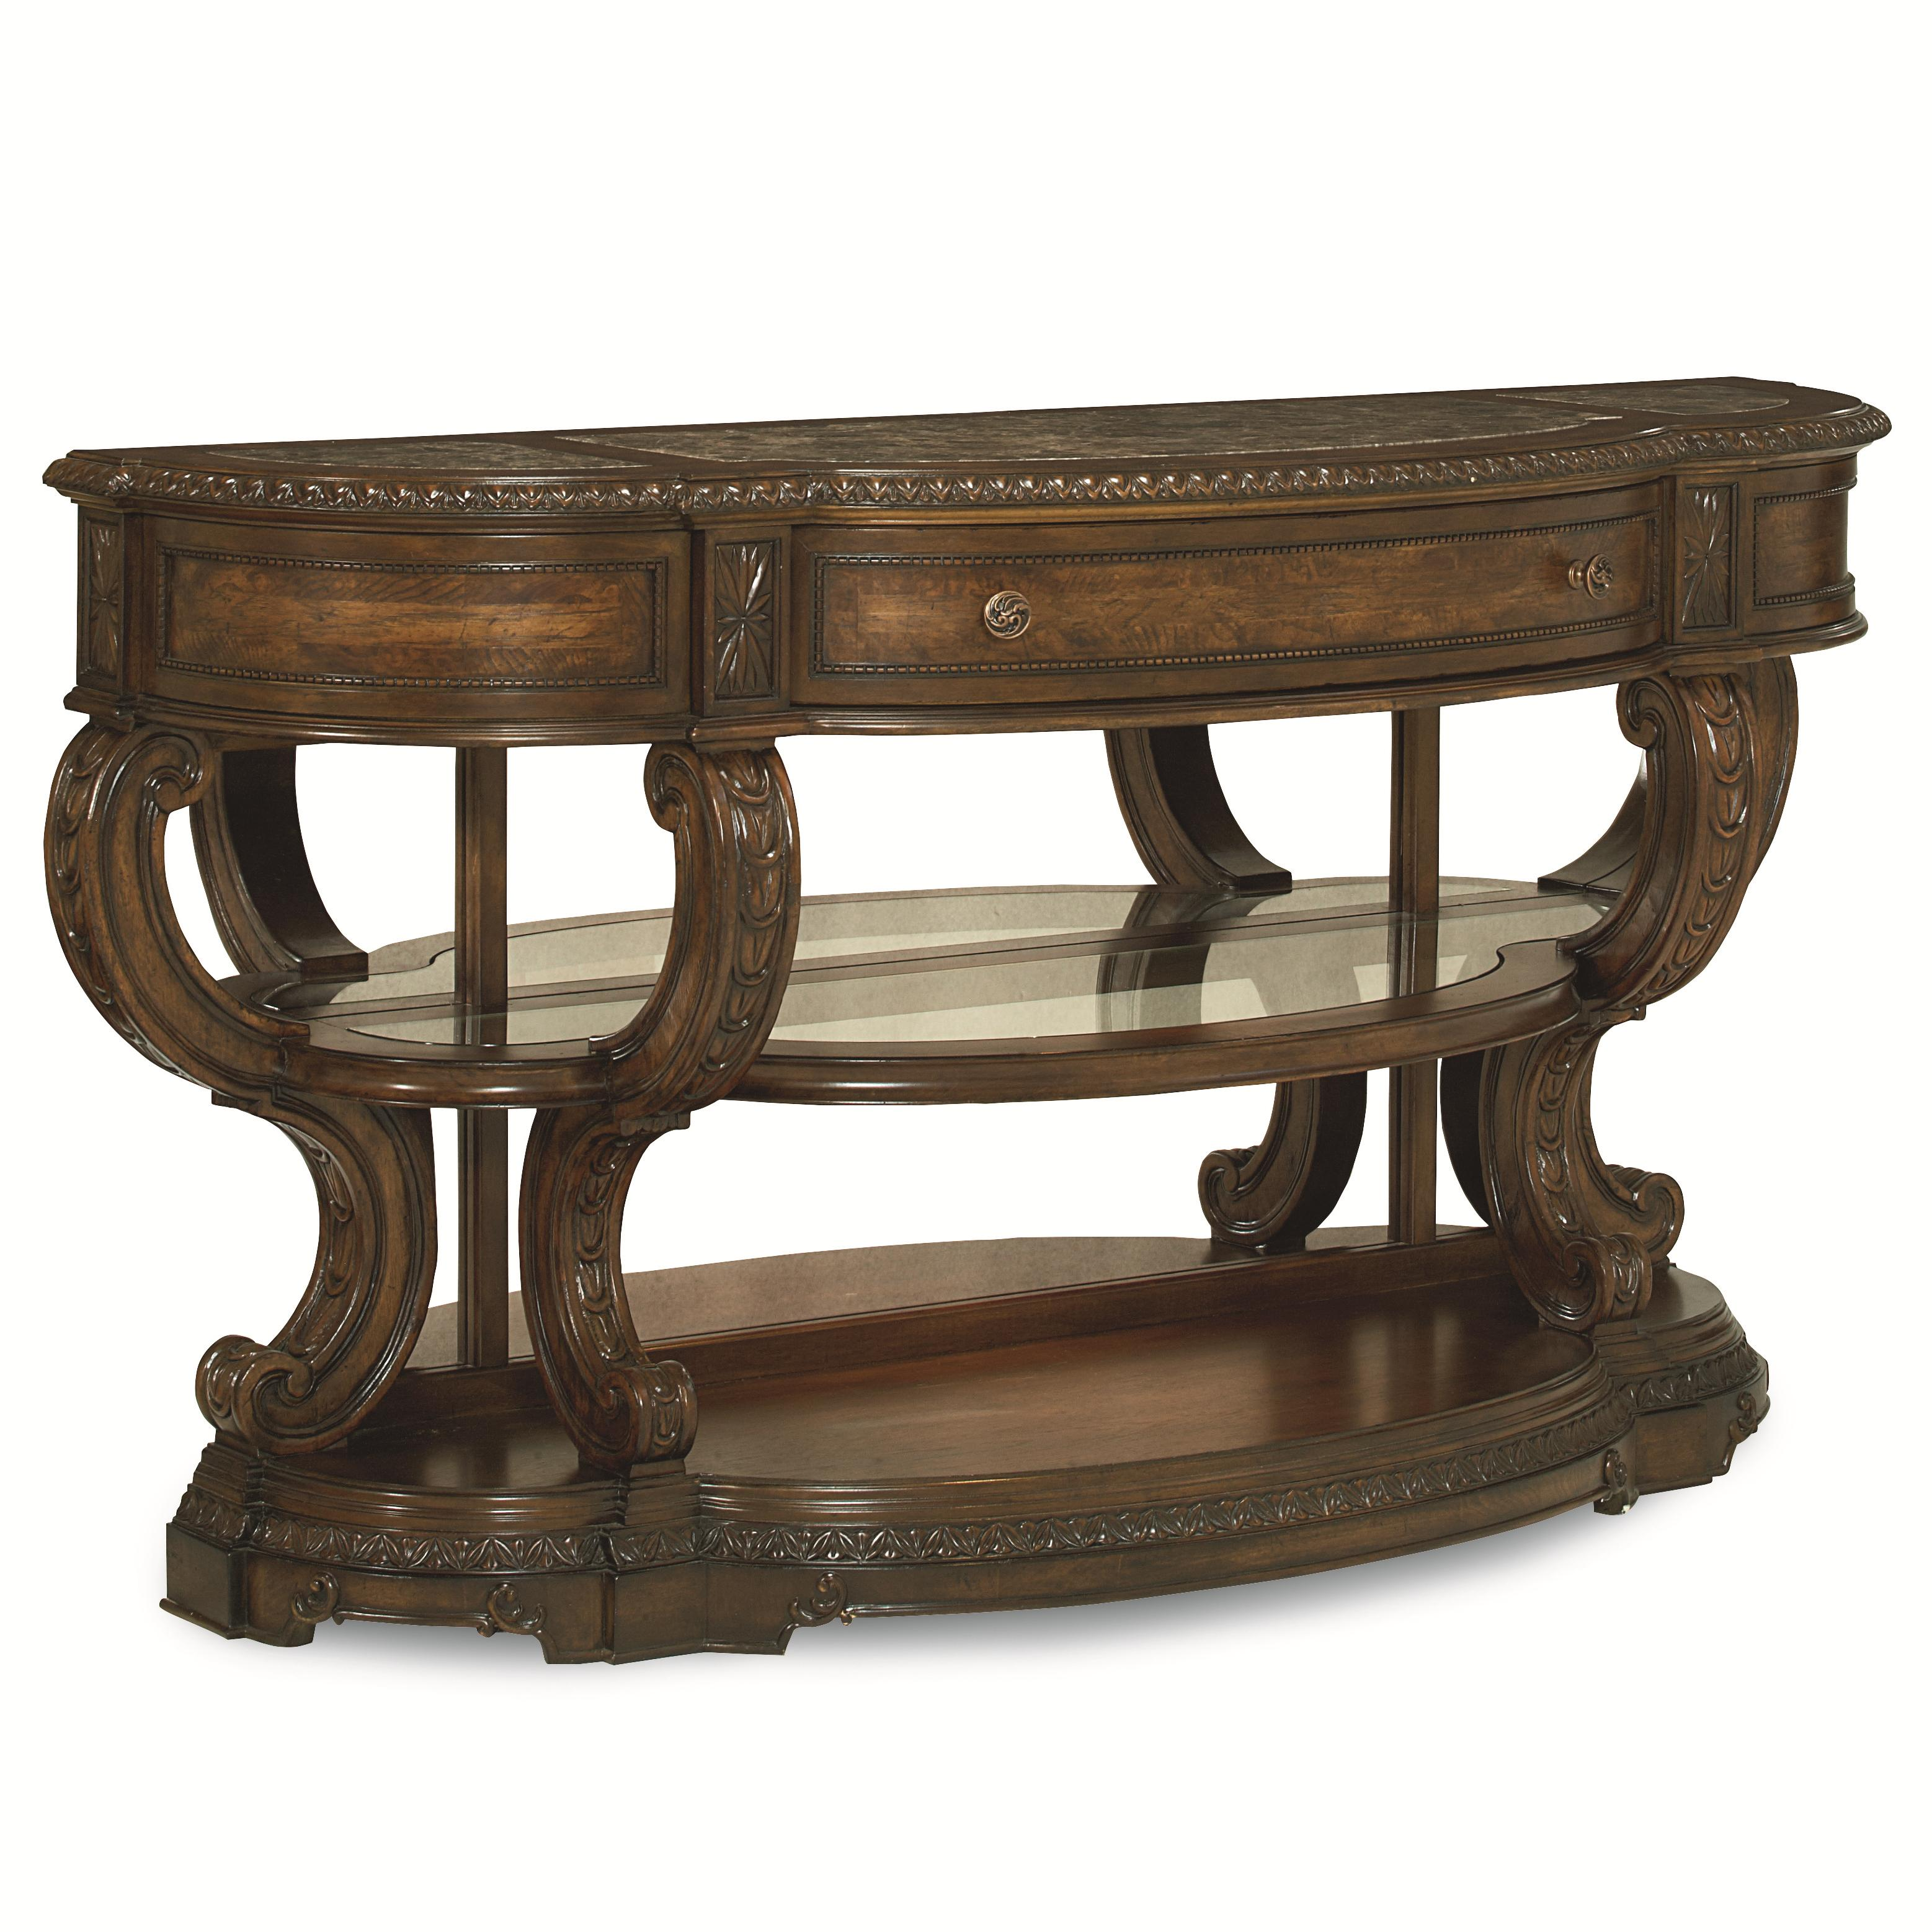 Legacy Classic Pemberleigh Console Table - Item Number: 3100-466